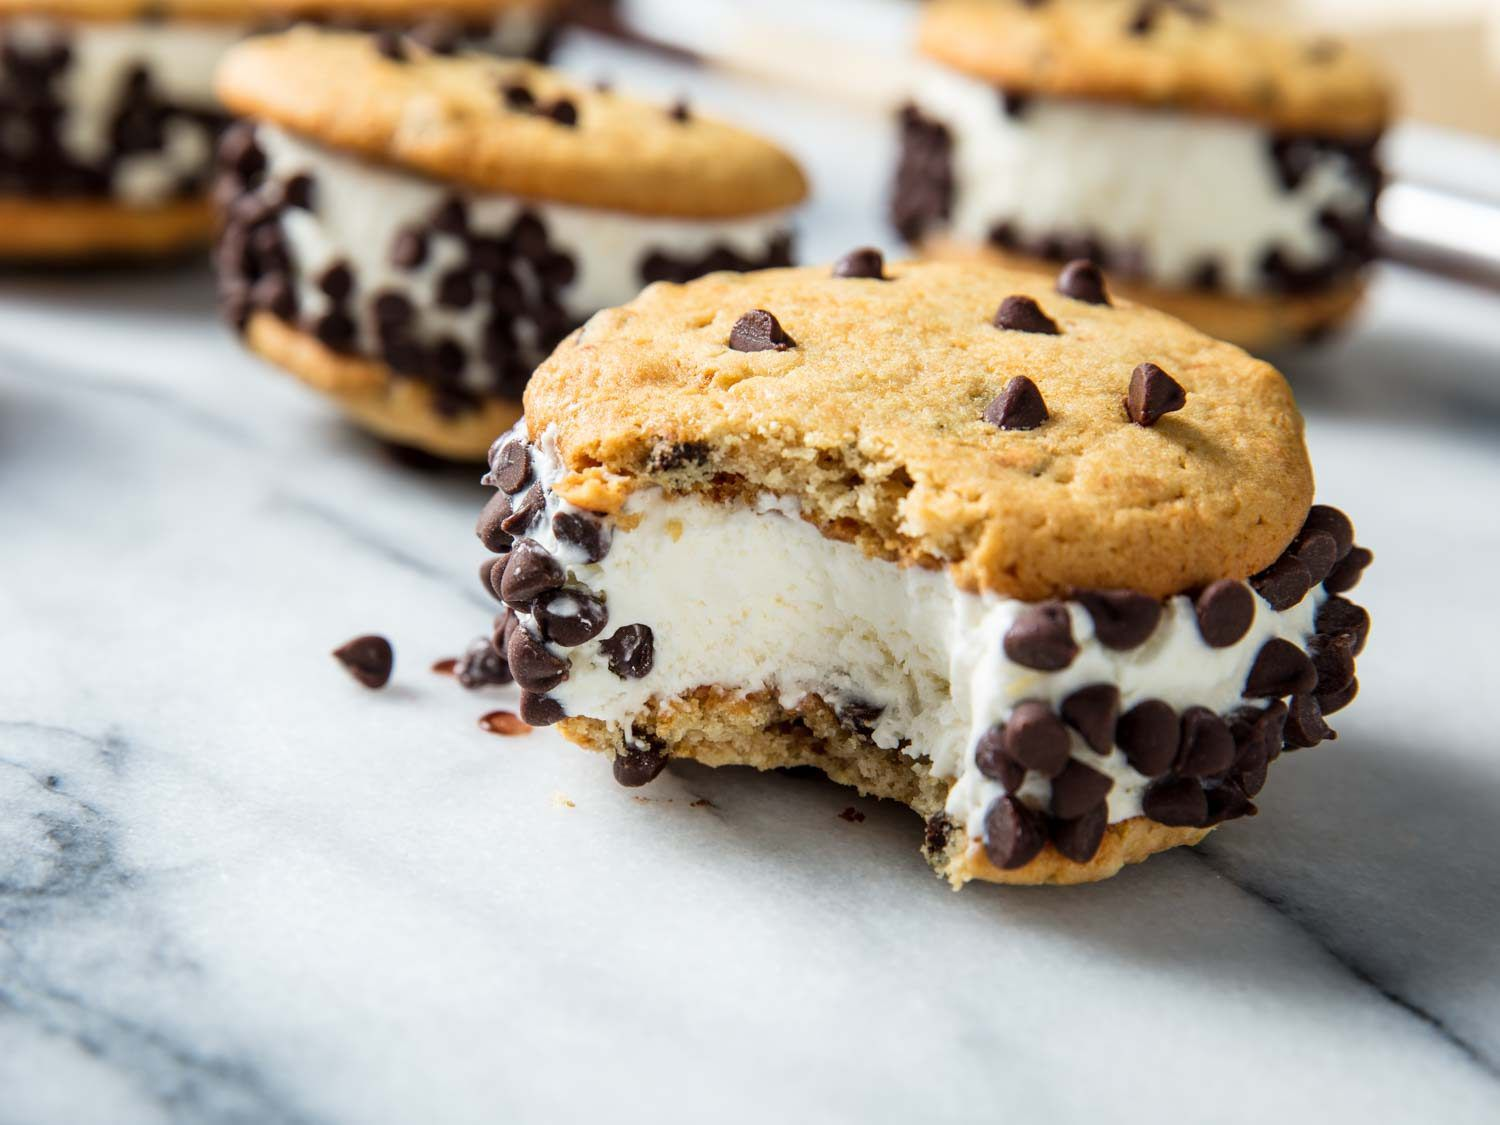 ice cream sandwich with chocolate chip cookies